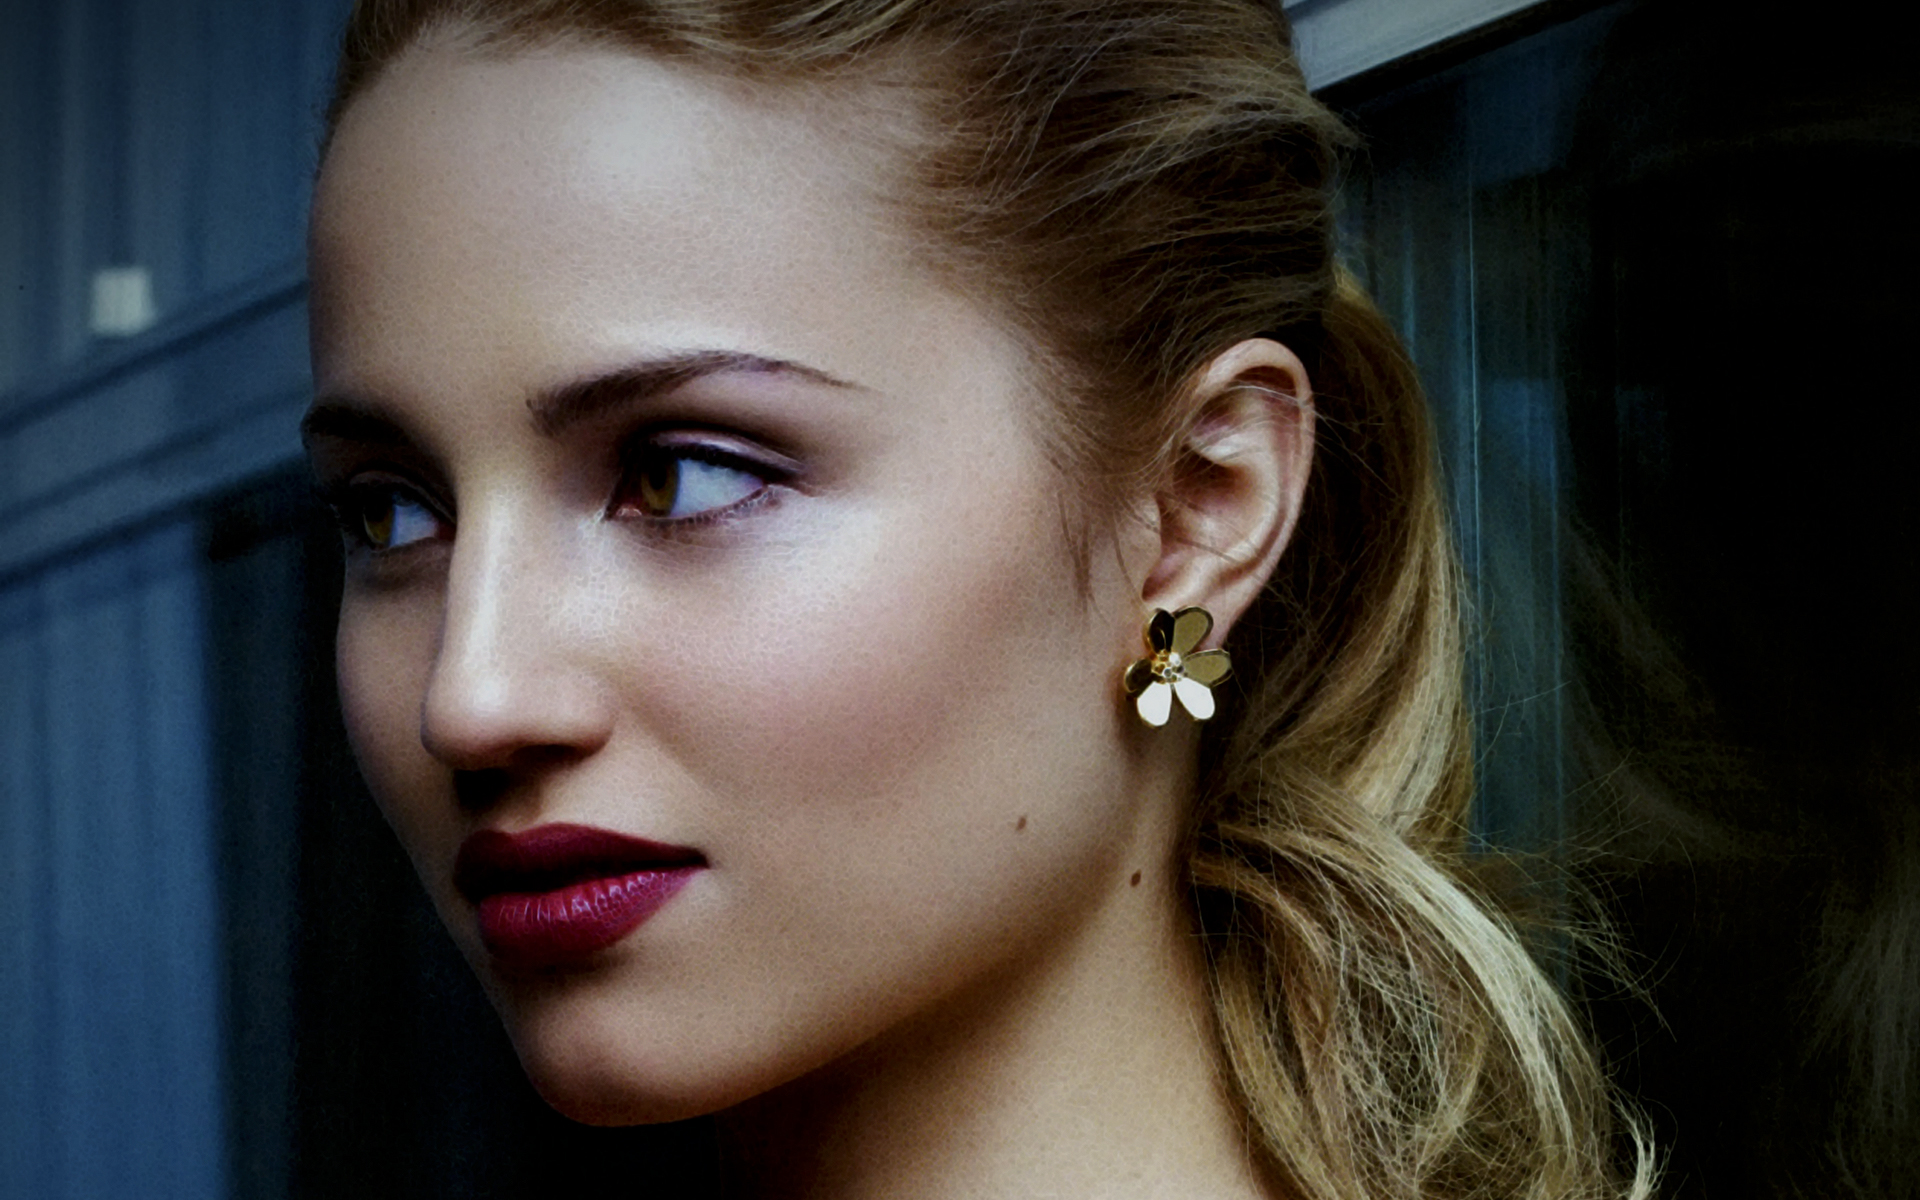 1920x1200 - Dianna Agron Wallpapers 24